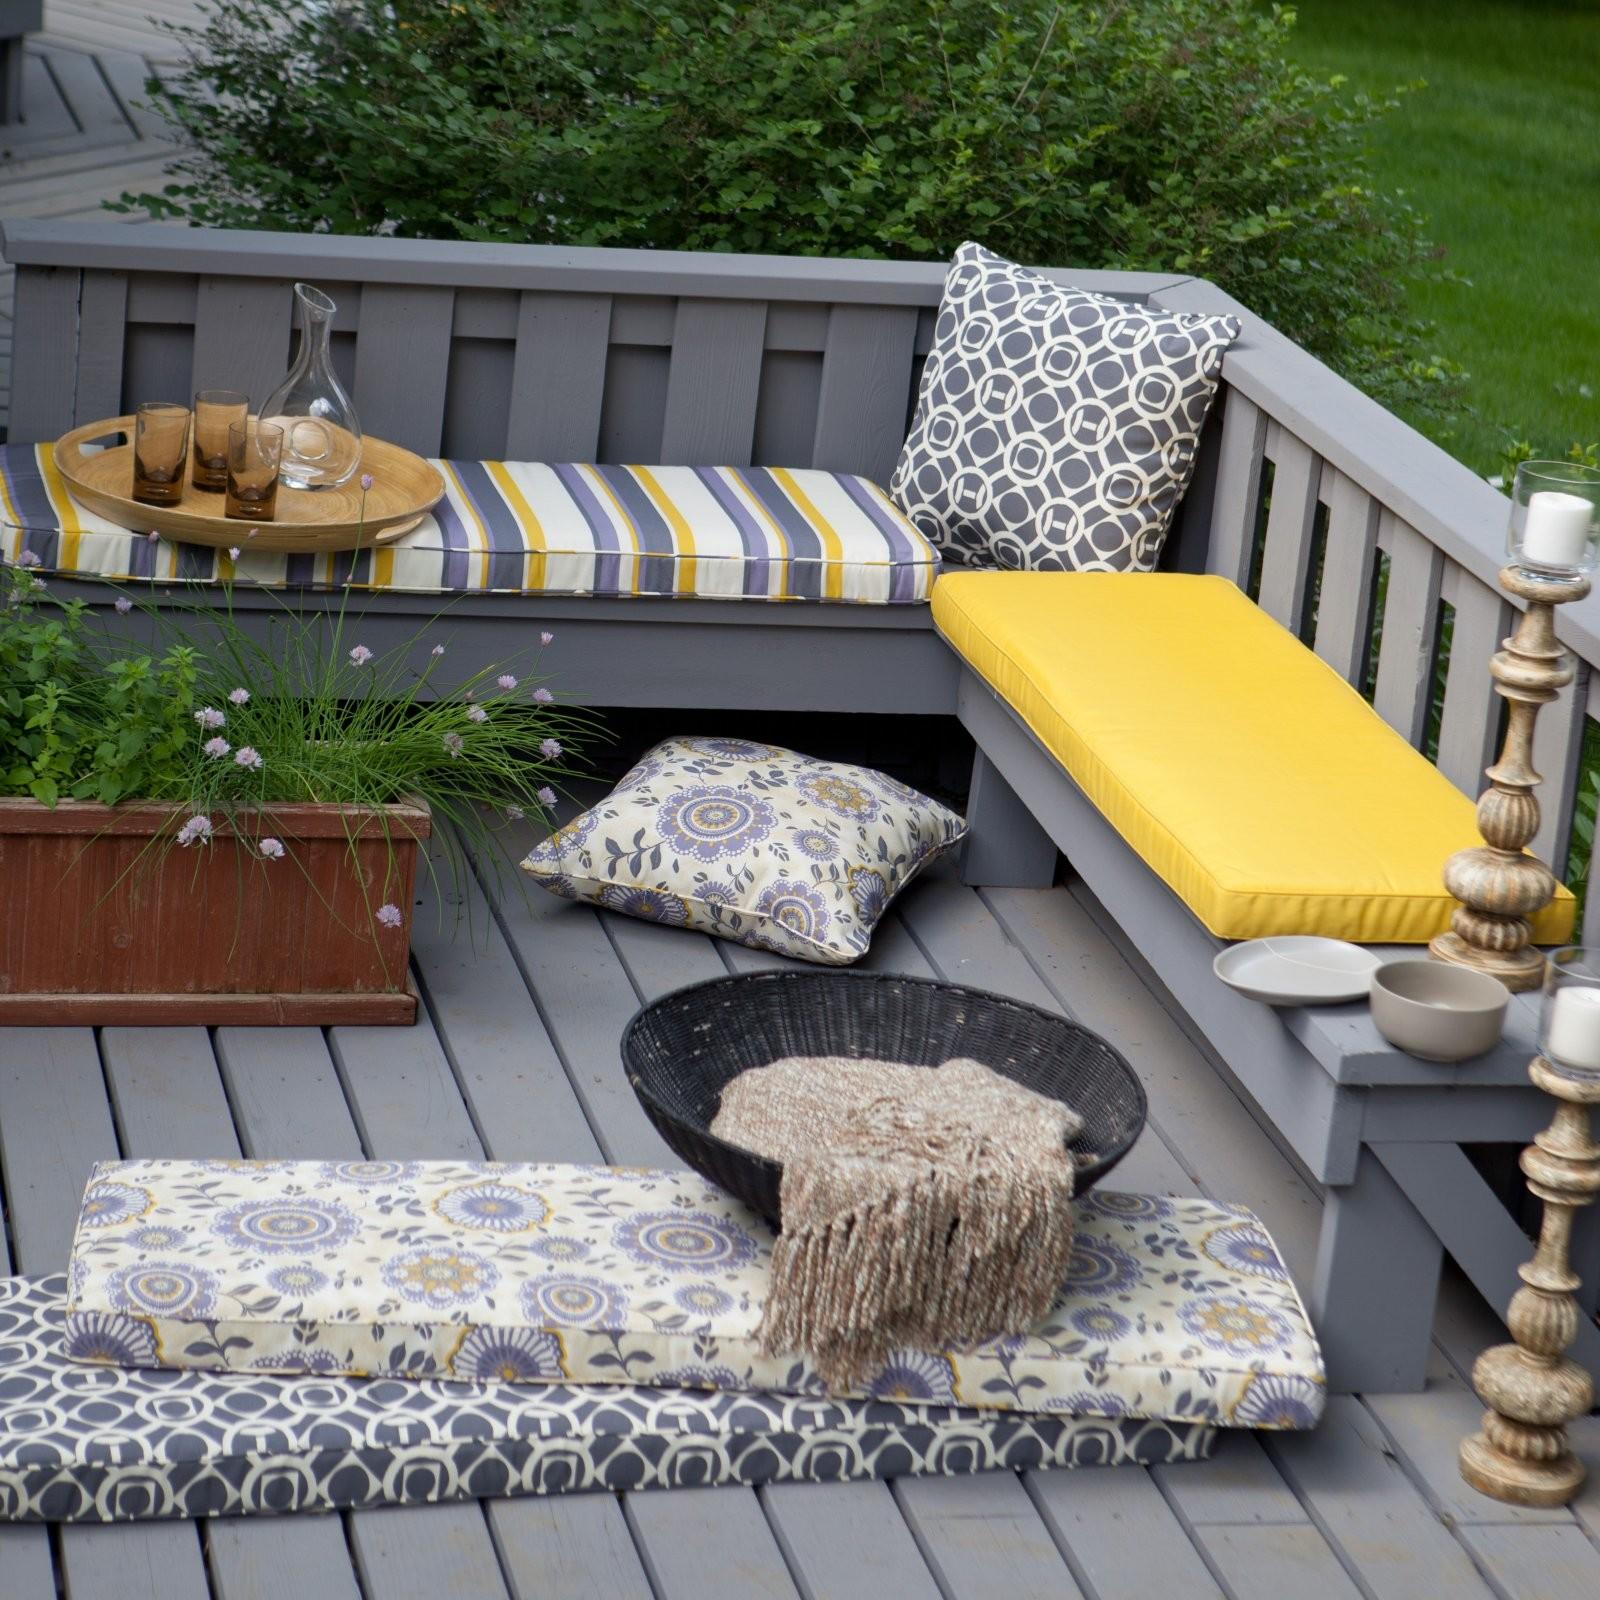 Deck Outdoor Bench Cushions Trends Decorating Savwi